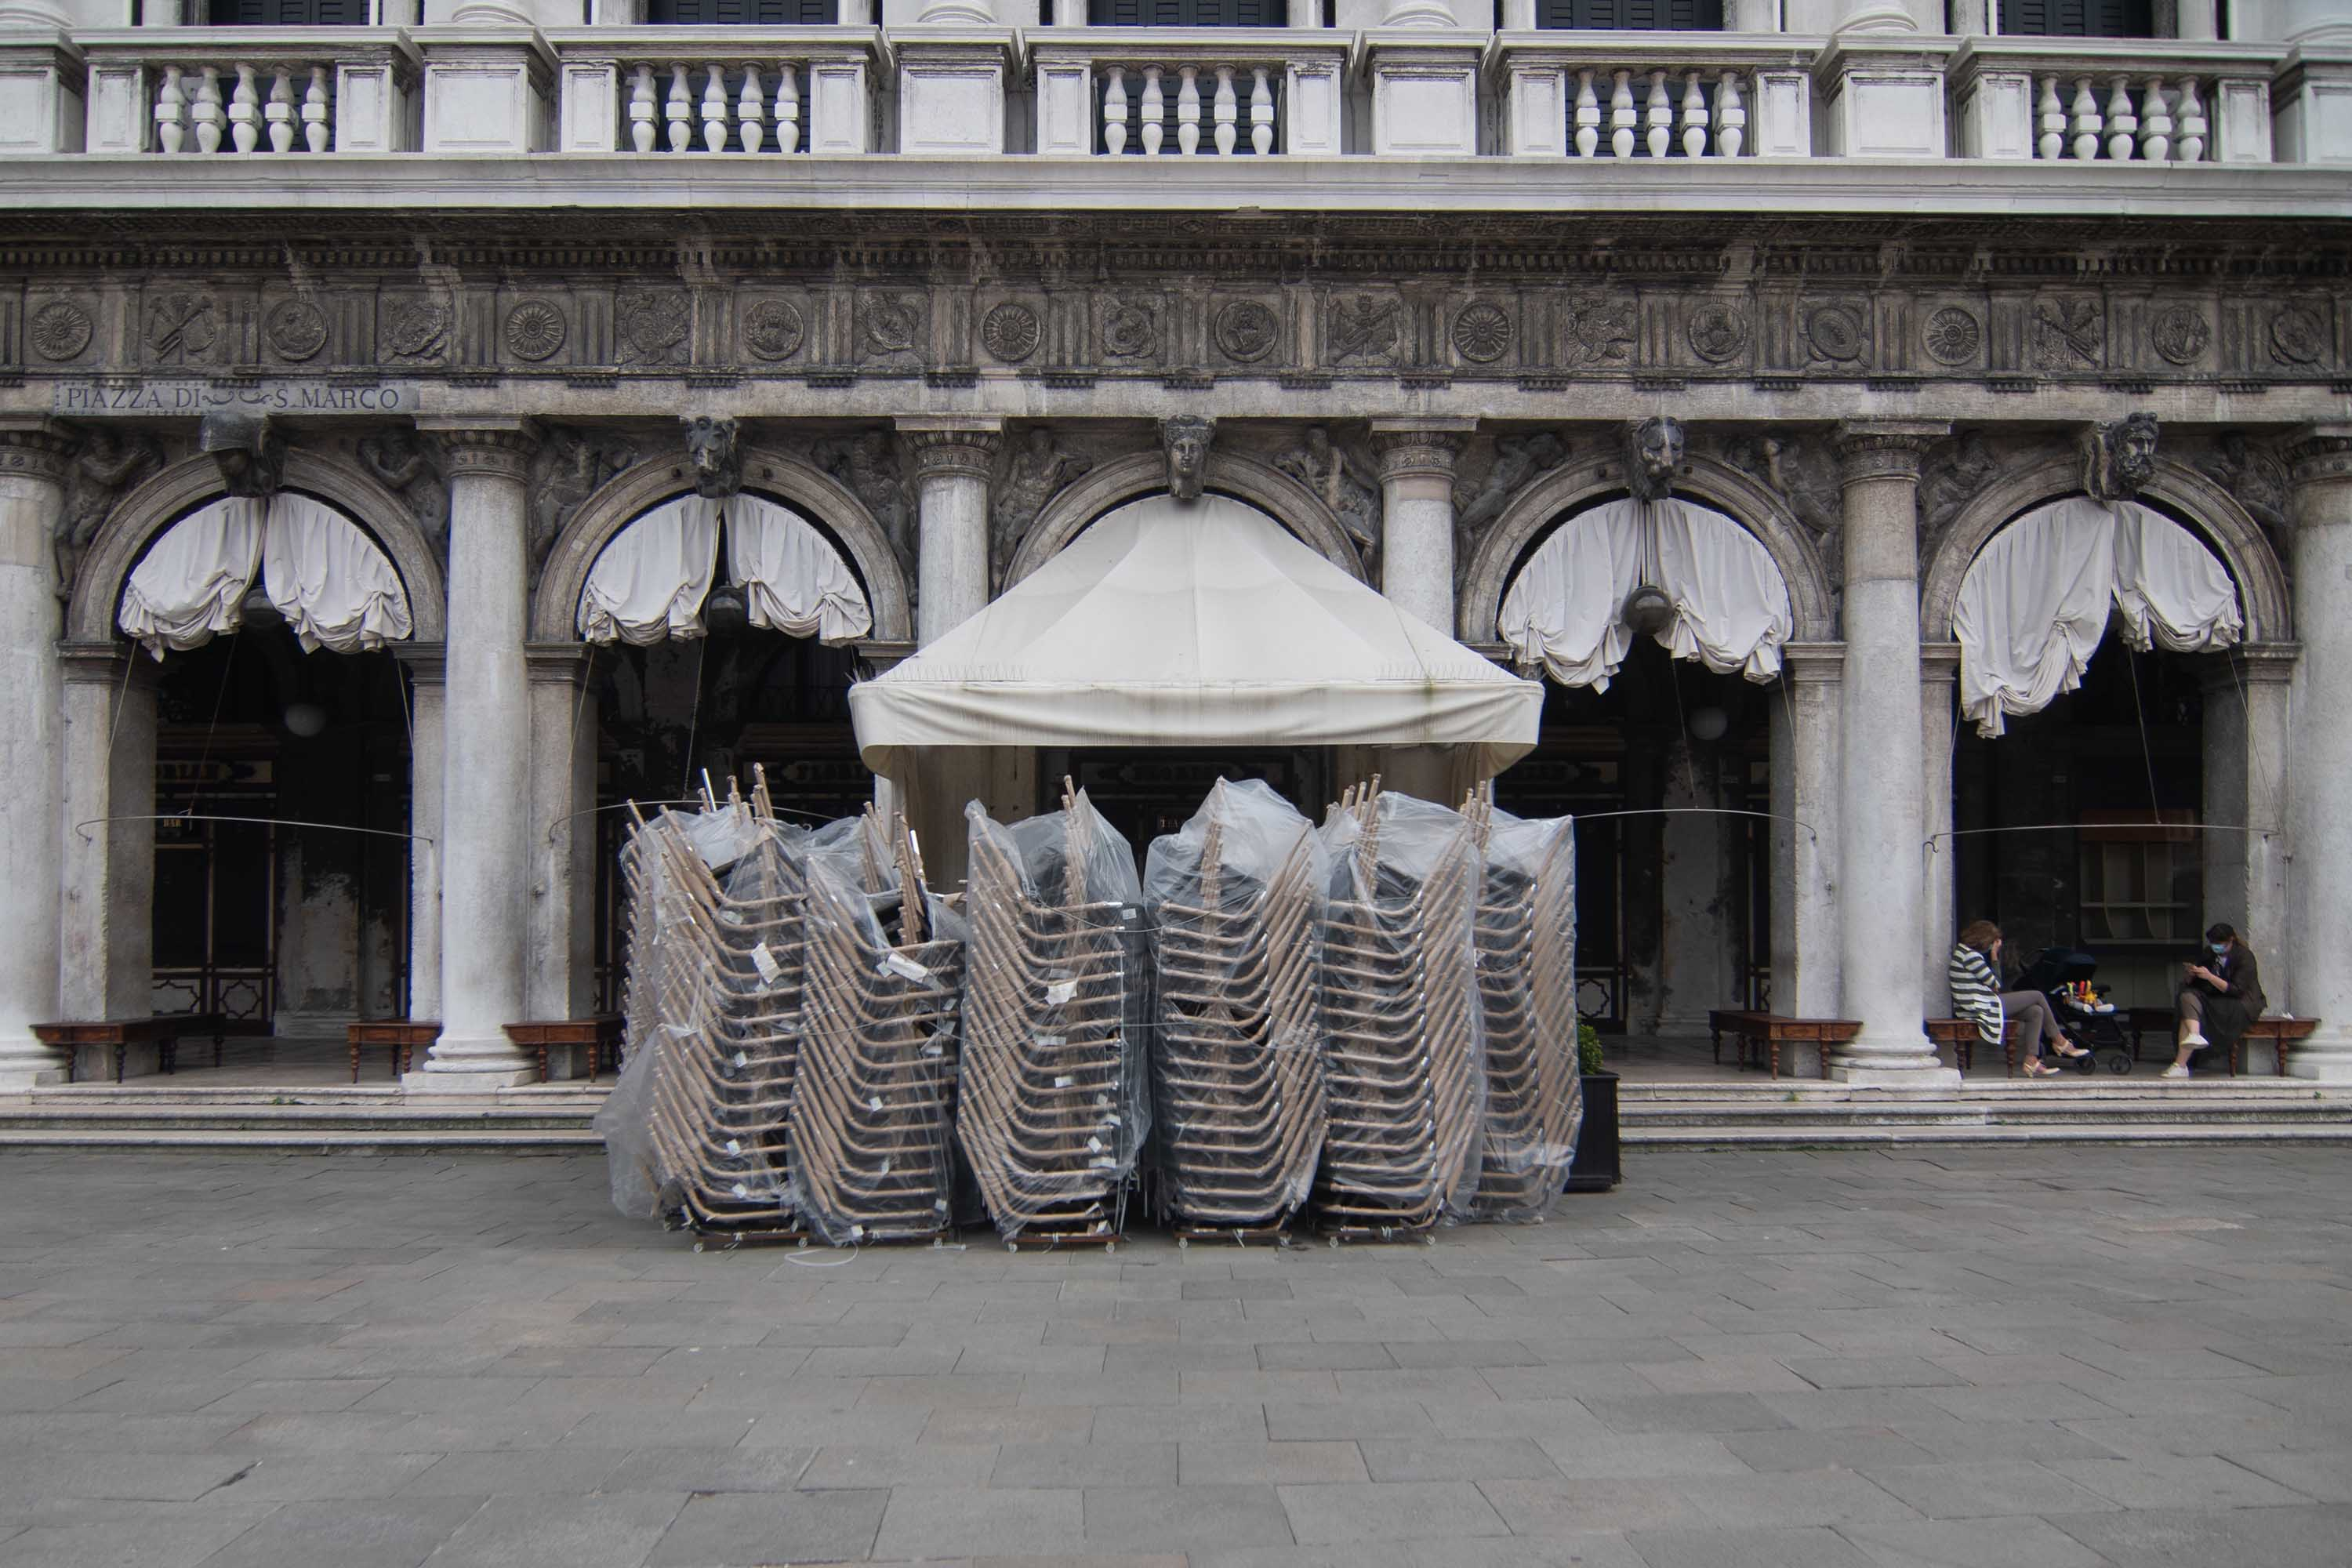 A closed cafe is pictured in St. Mark's Square in Venice, Italy, on May 18.